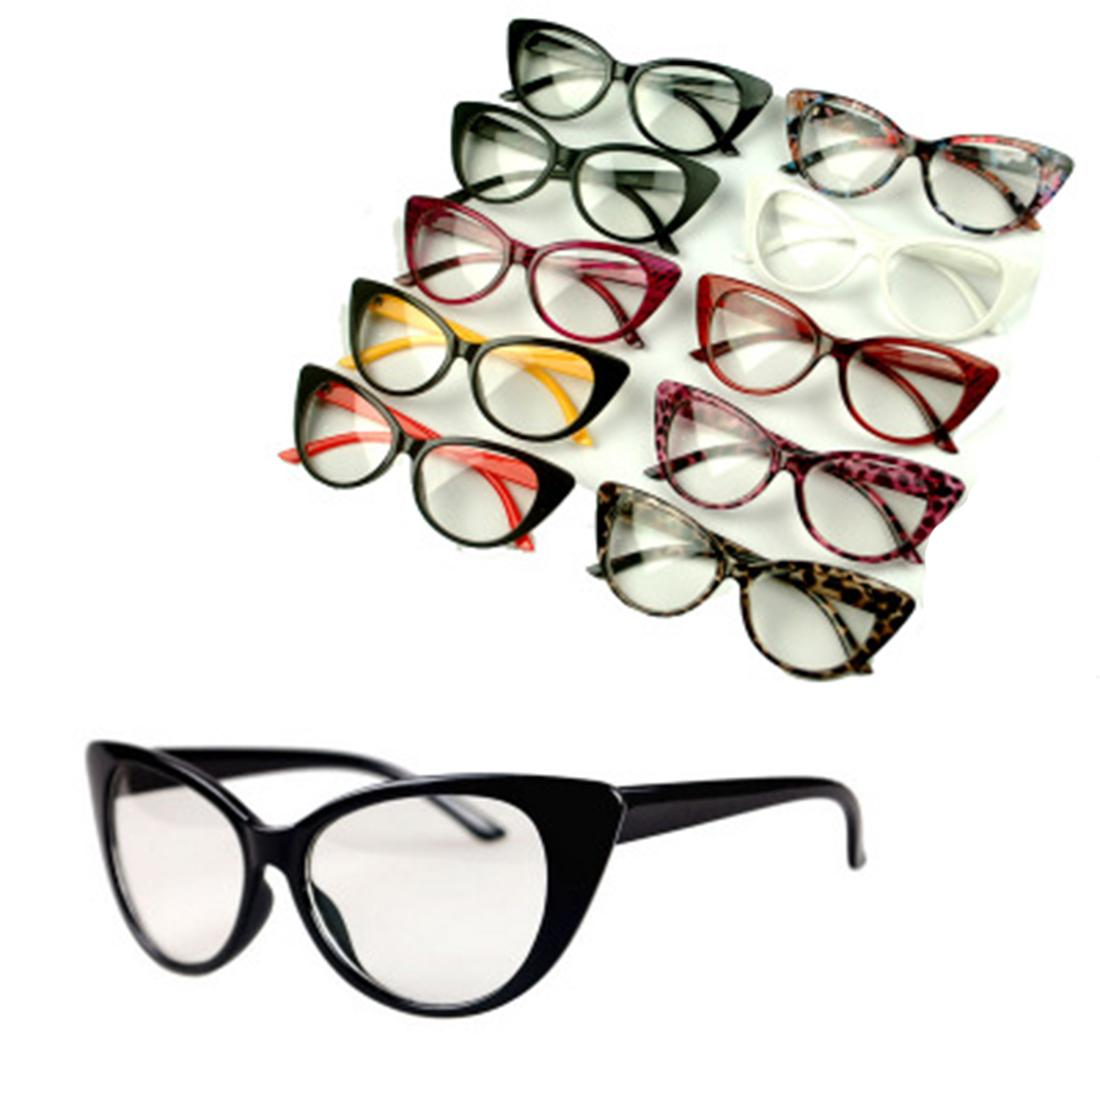 eab63def8f3b Fashion Women Cat Eye Frames Sexy Striped Retro Eyeglasses Ladies Vintage  Spectacles Frame Clear Lens Glasses Designer Online with  1.47 Piece on  Super03 s ...